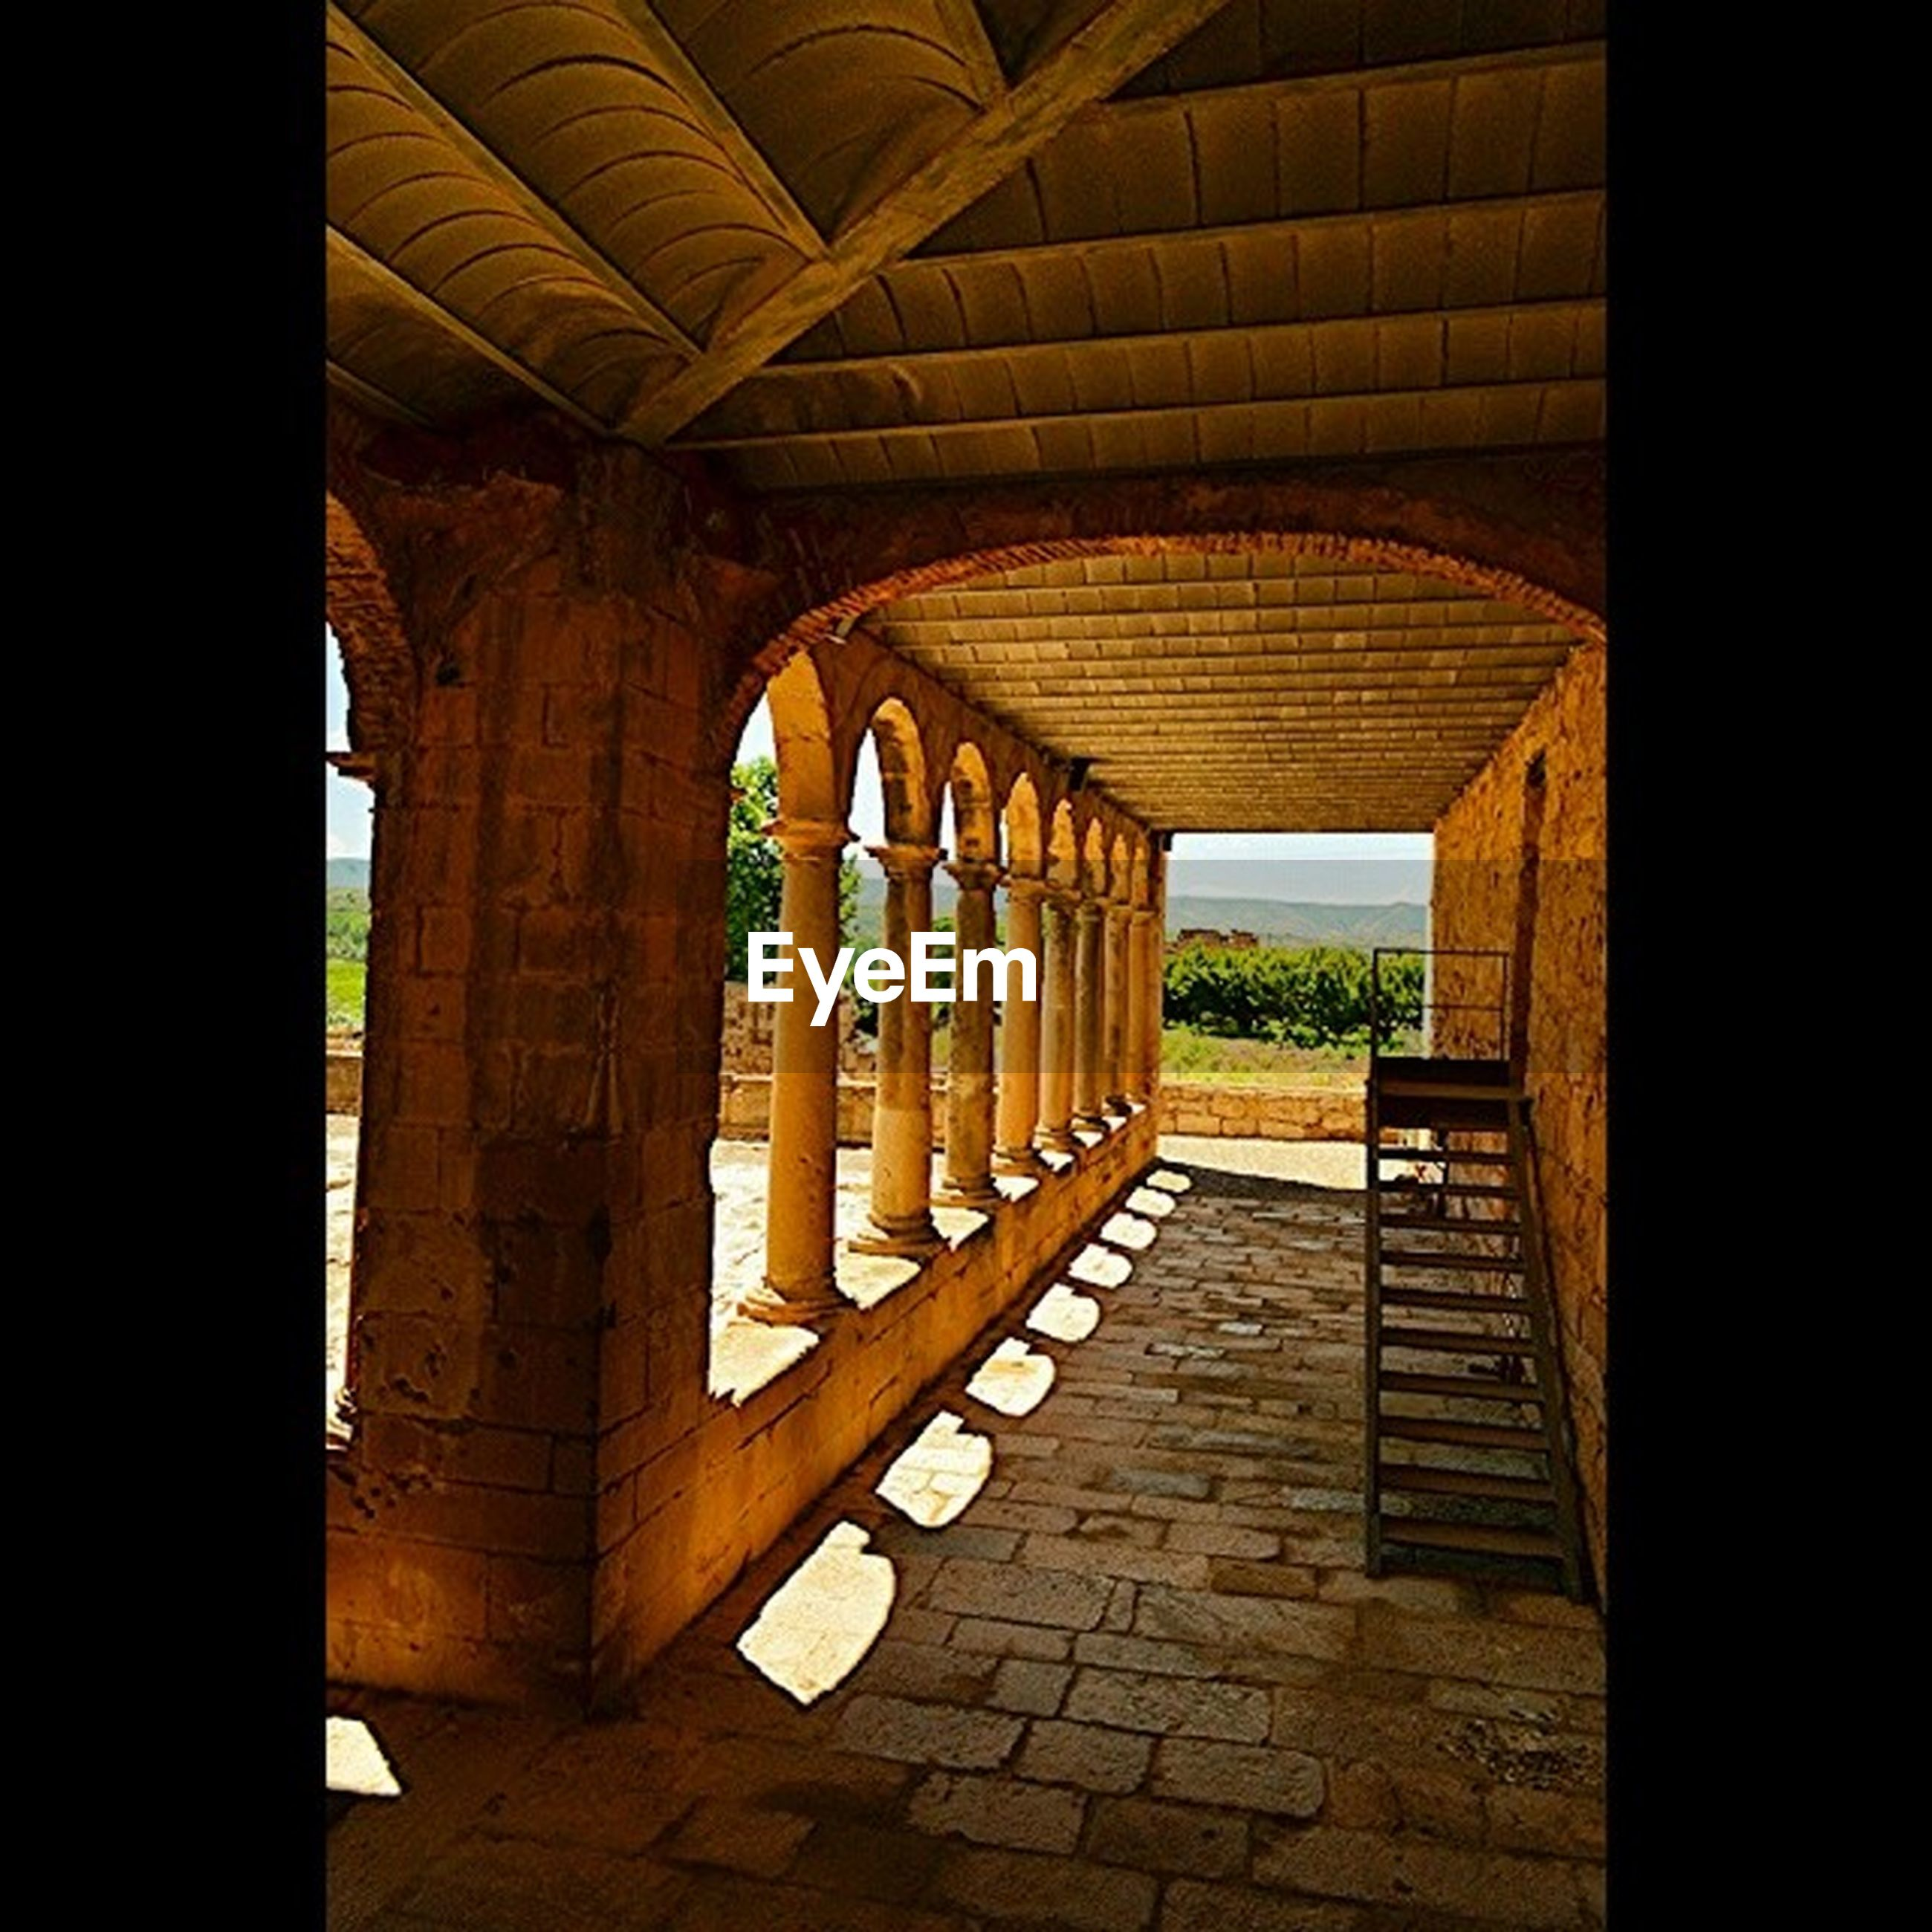 architecture, built structure, indoors, the way forward, arch, corridor, architectural column, history, diminishing perspective, sunlight, colonnade, old, column, archway, day, building exterior, walkway, narrow, no people, vanishing point